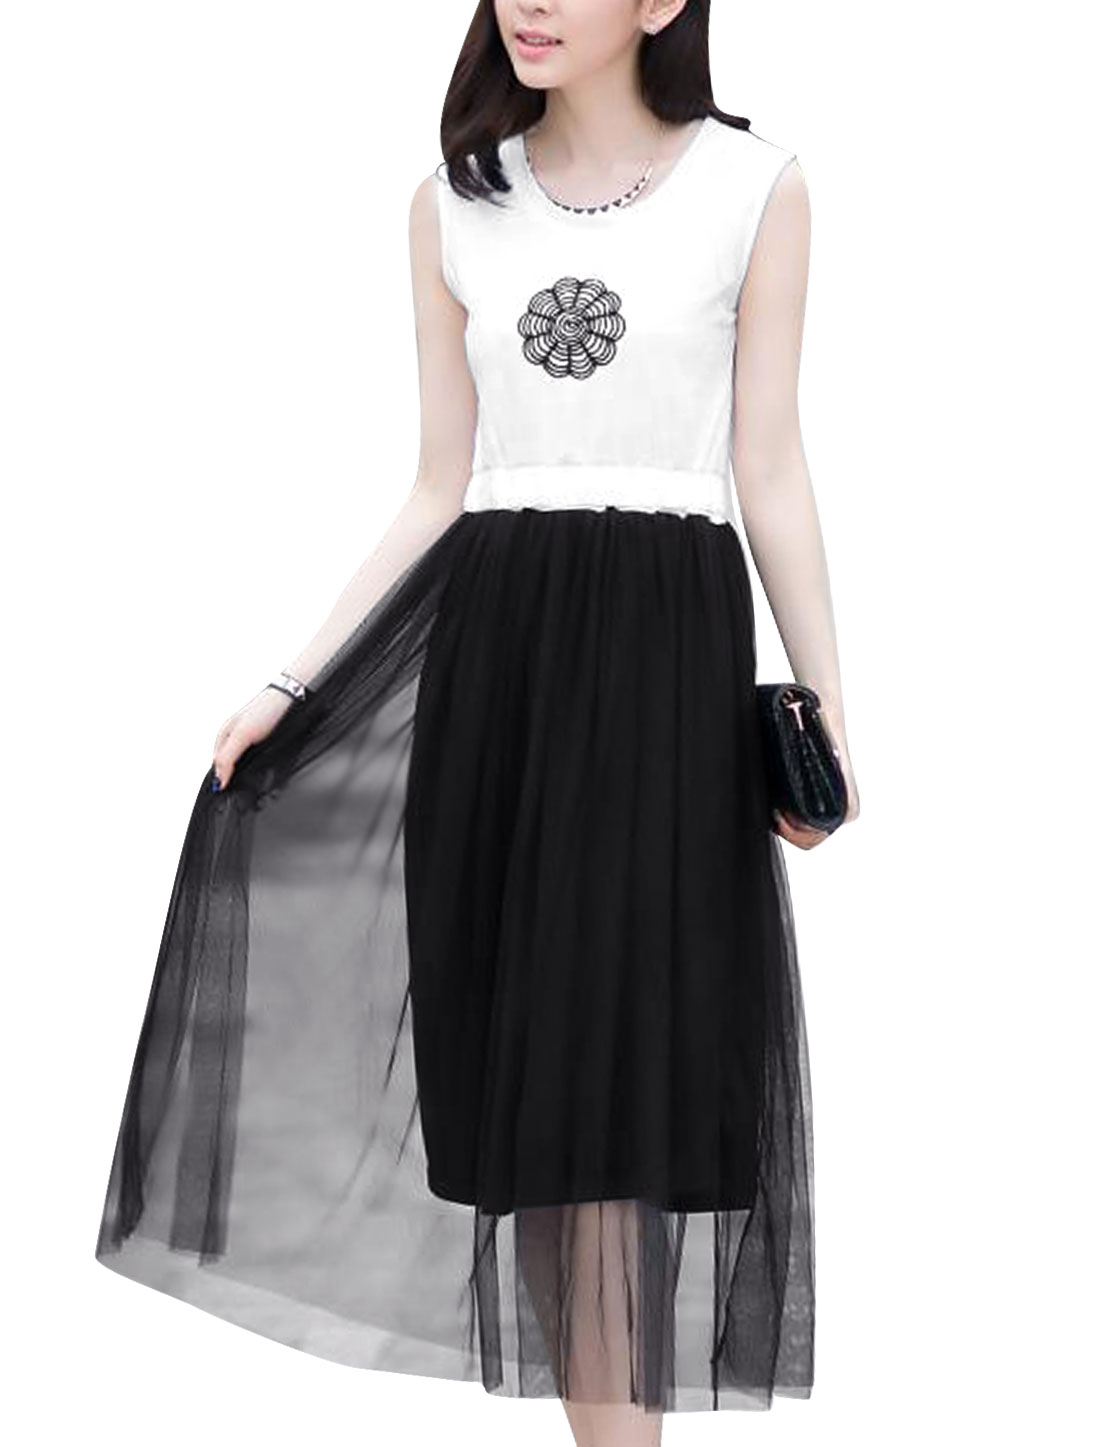 Lady Sleeveless Embroidered Design Mesh Panel A-Line Dress White Black XS